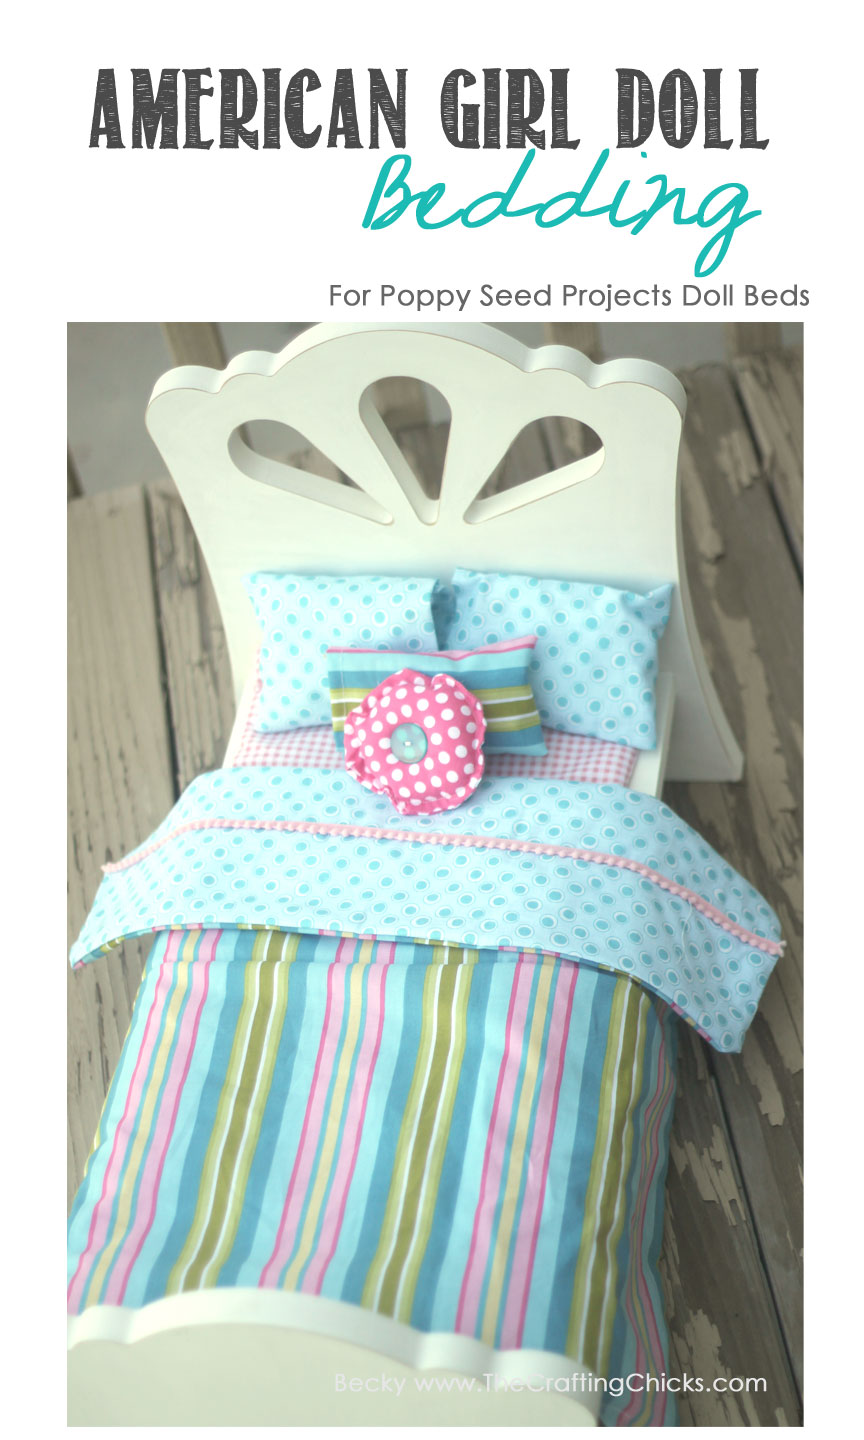 ... doll bed quilt pattern Plans PDF Download Free 4×4 Mailbox Post Plans